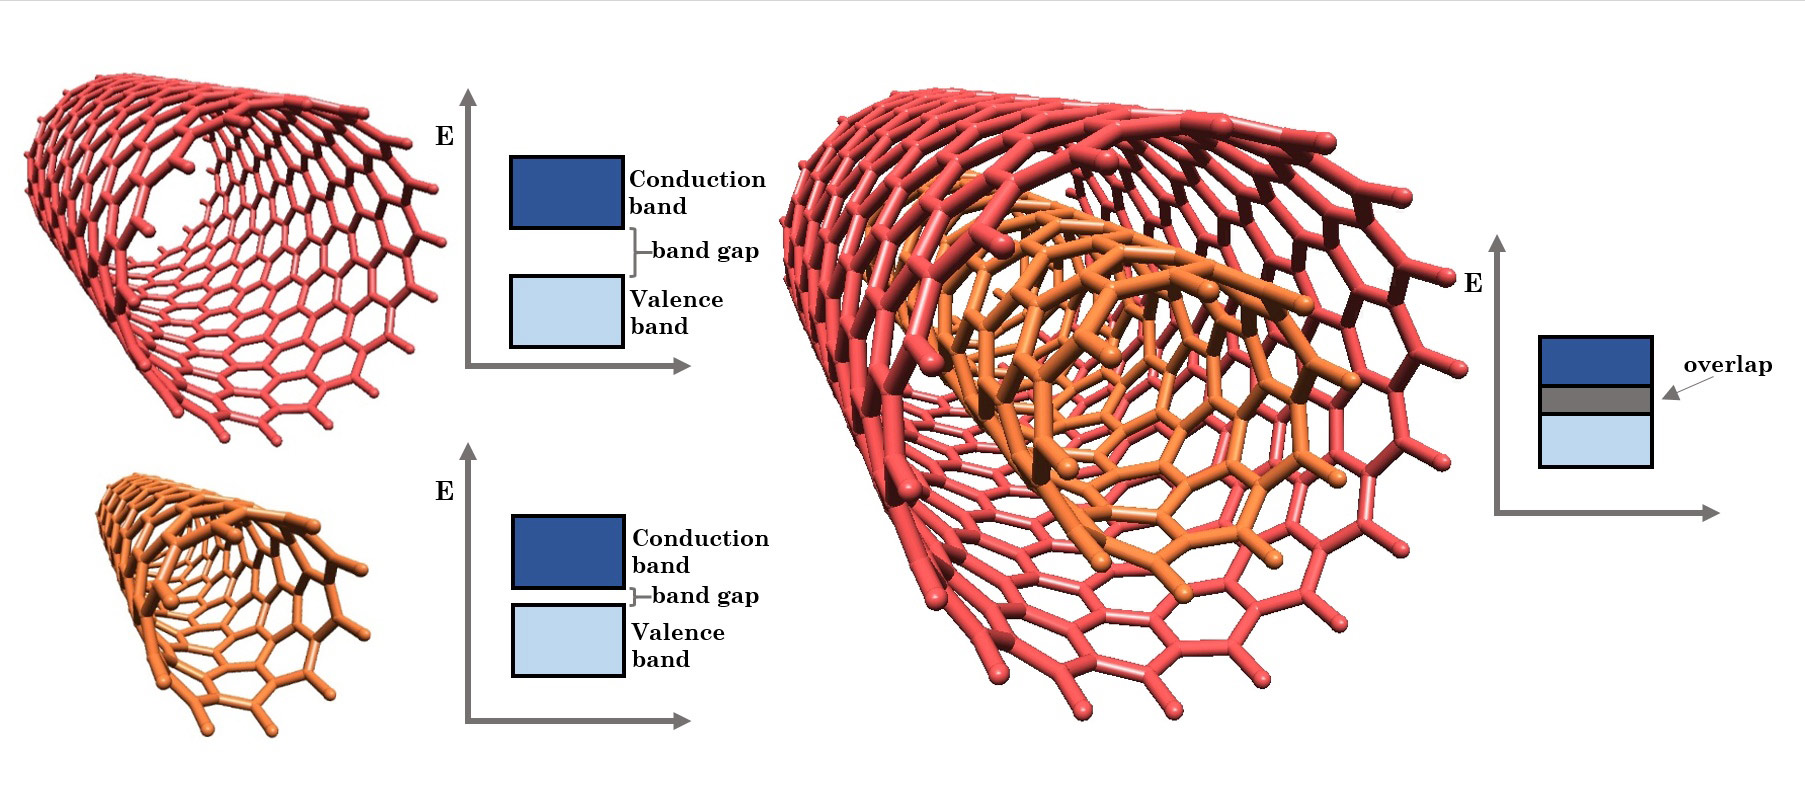 Why are carbon nanotubes so strong?